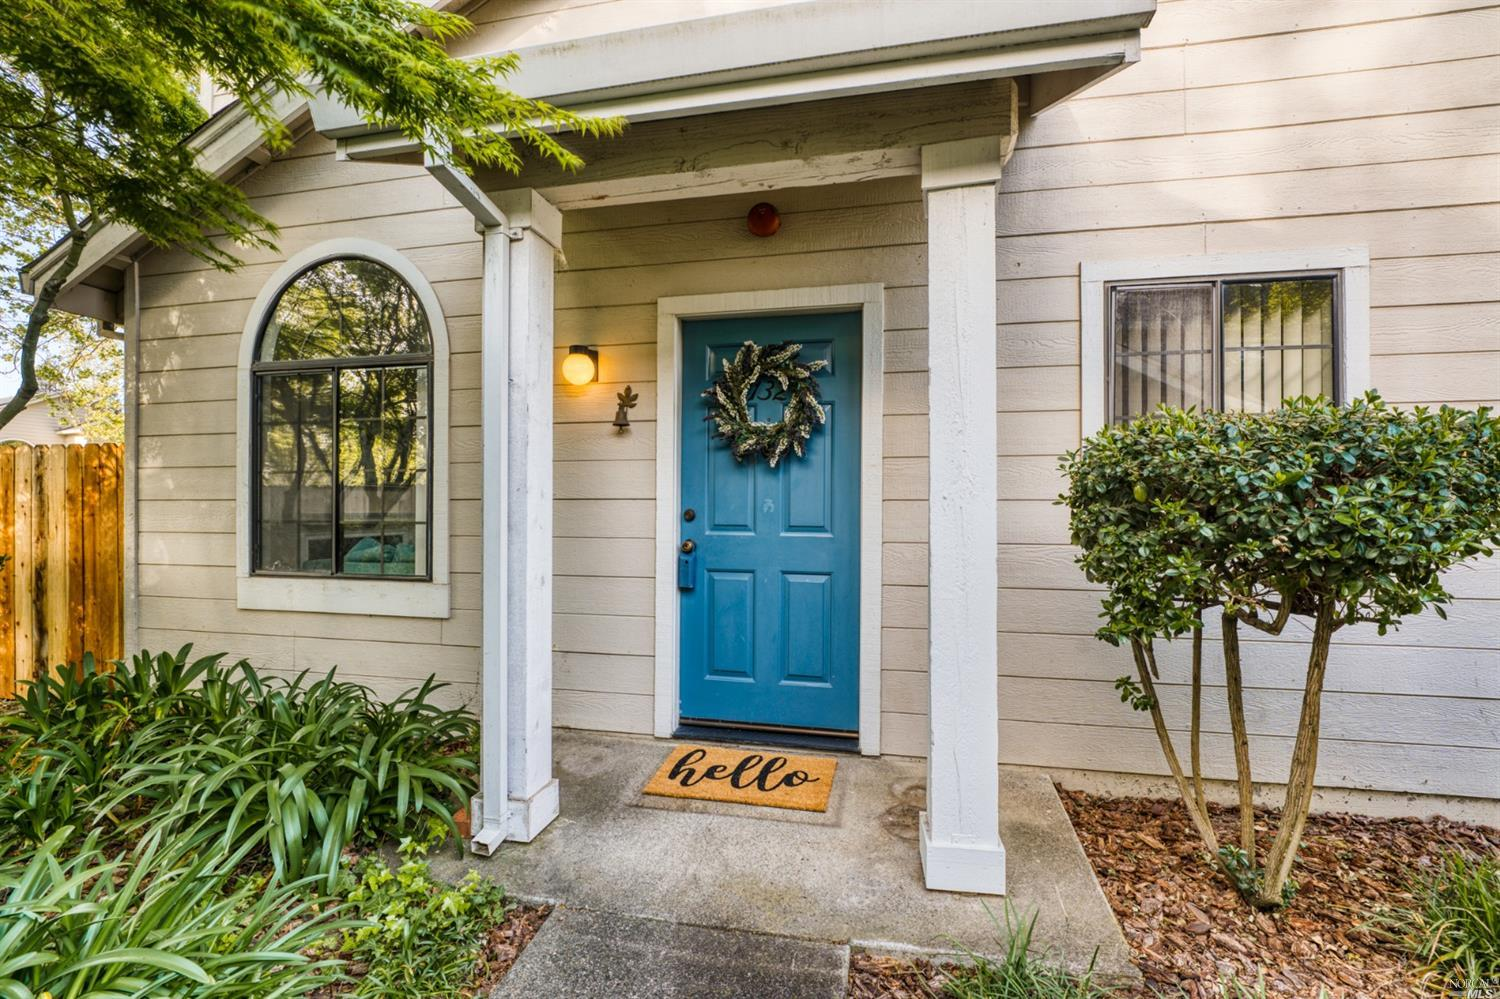 Hard to find single level end-unit condo w/no neighbors above! Private yard & patio that back up to